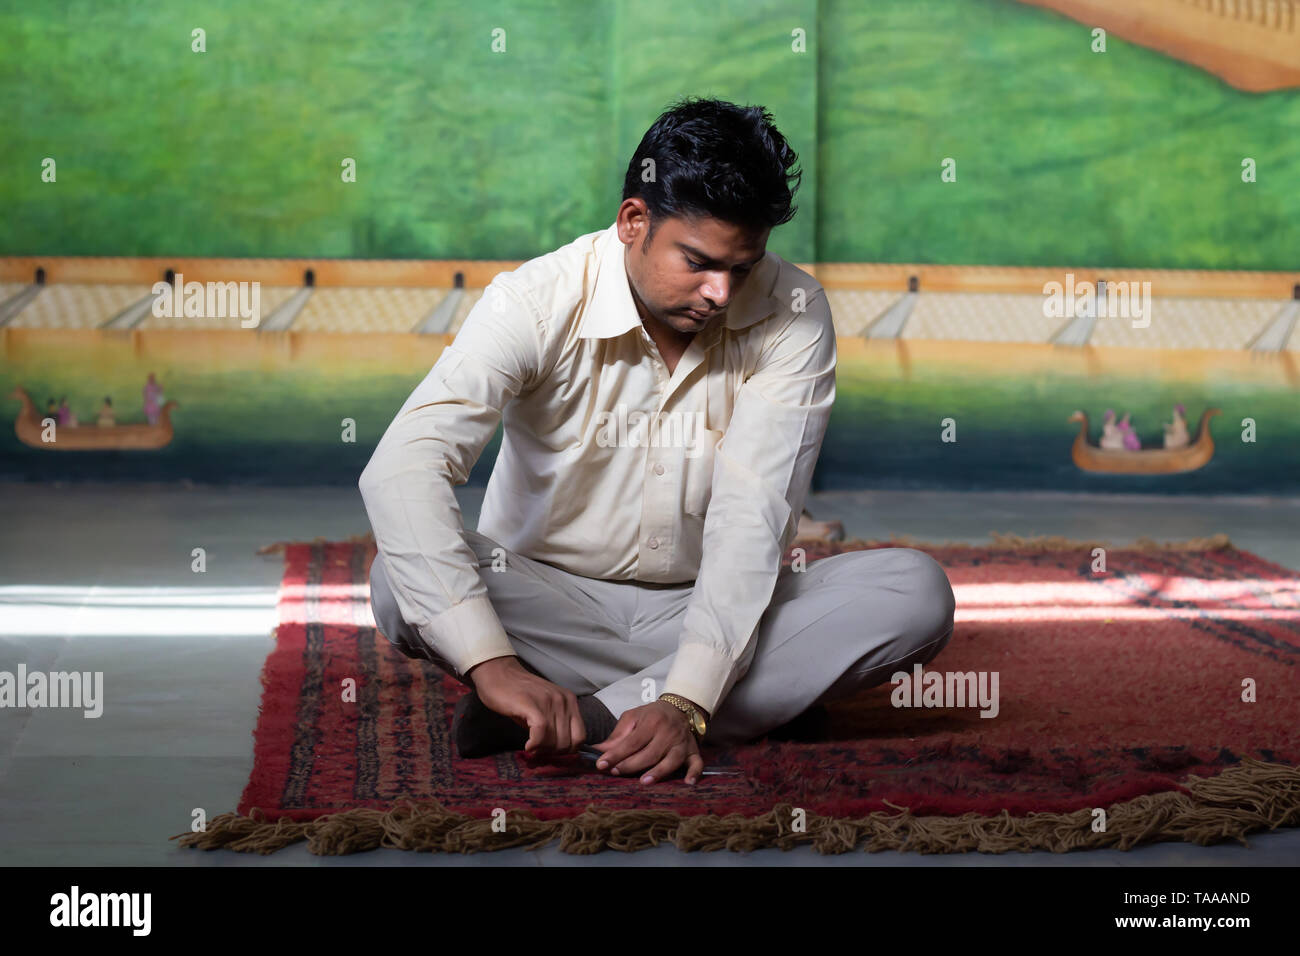 An Indian man working in a rug company cutting off rug tips after hand weaving. - Stock Image